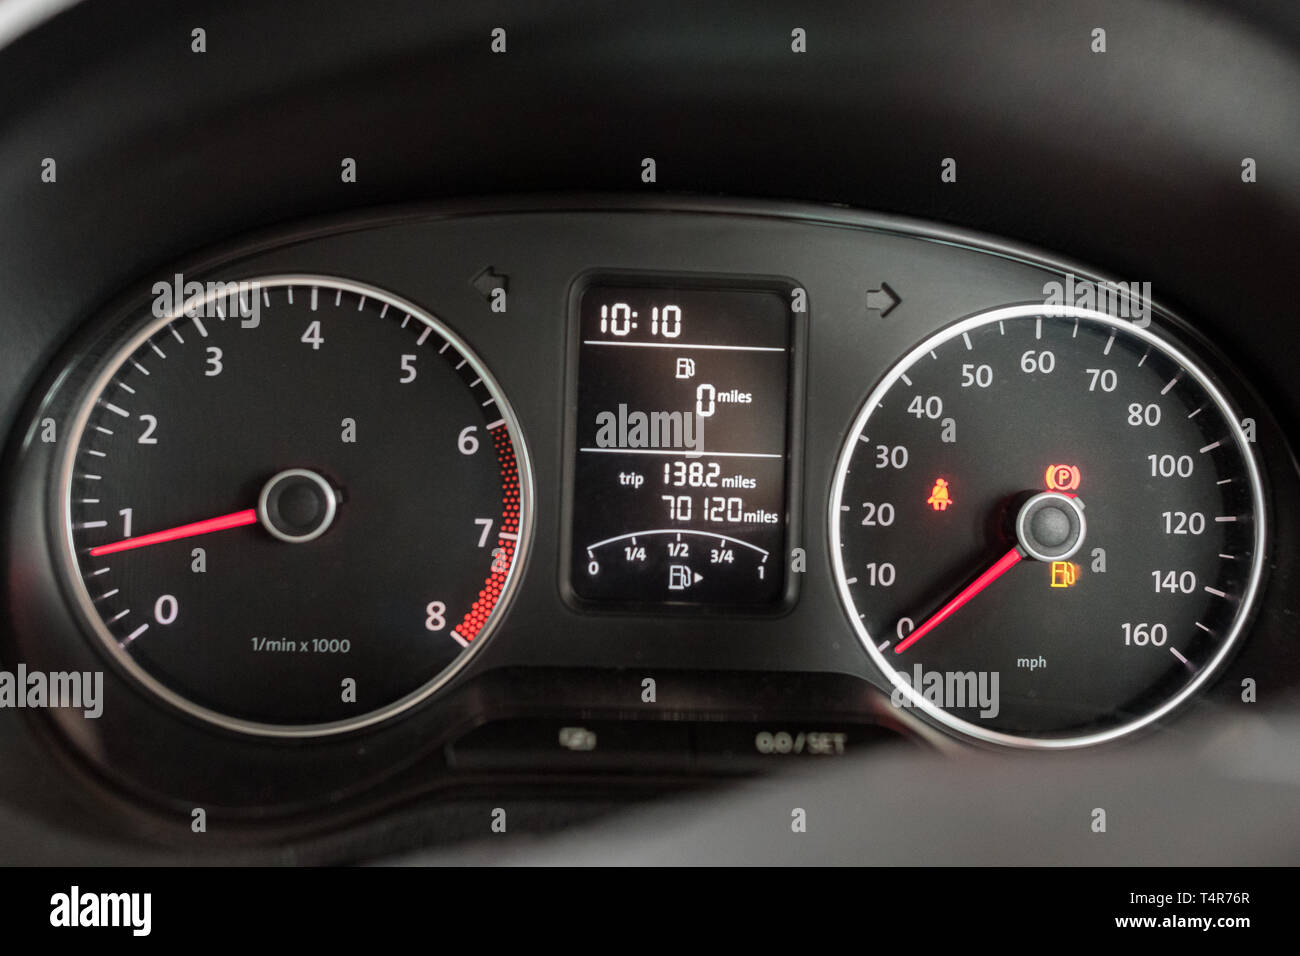 driving on empty fuel tank - fuel gauge showing 0 miles to empty Stock Photo